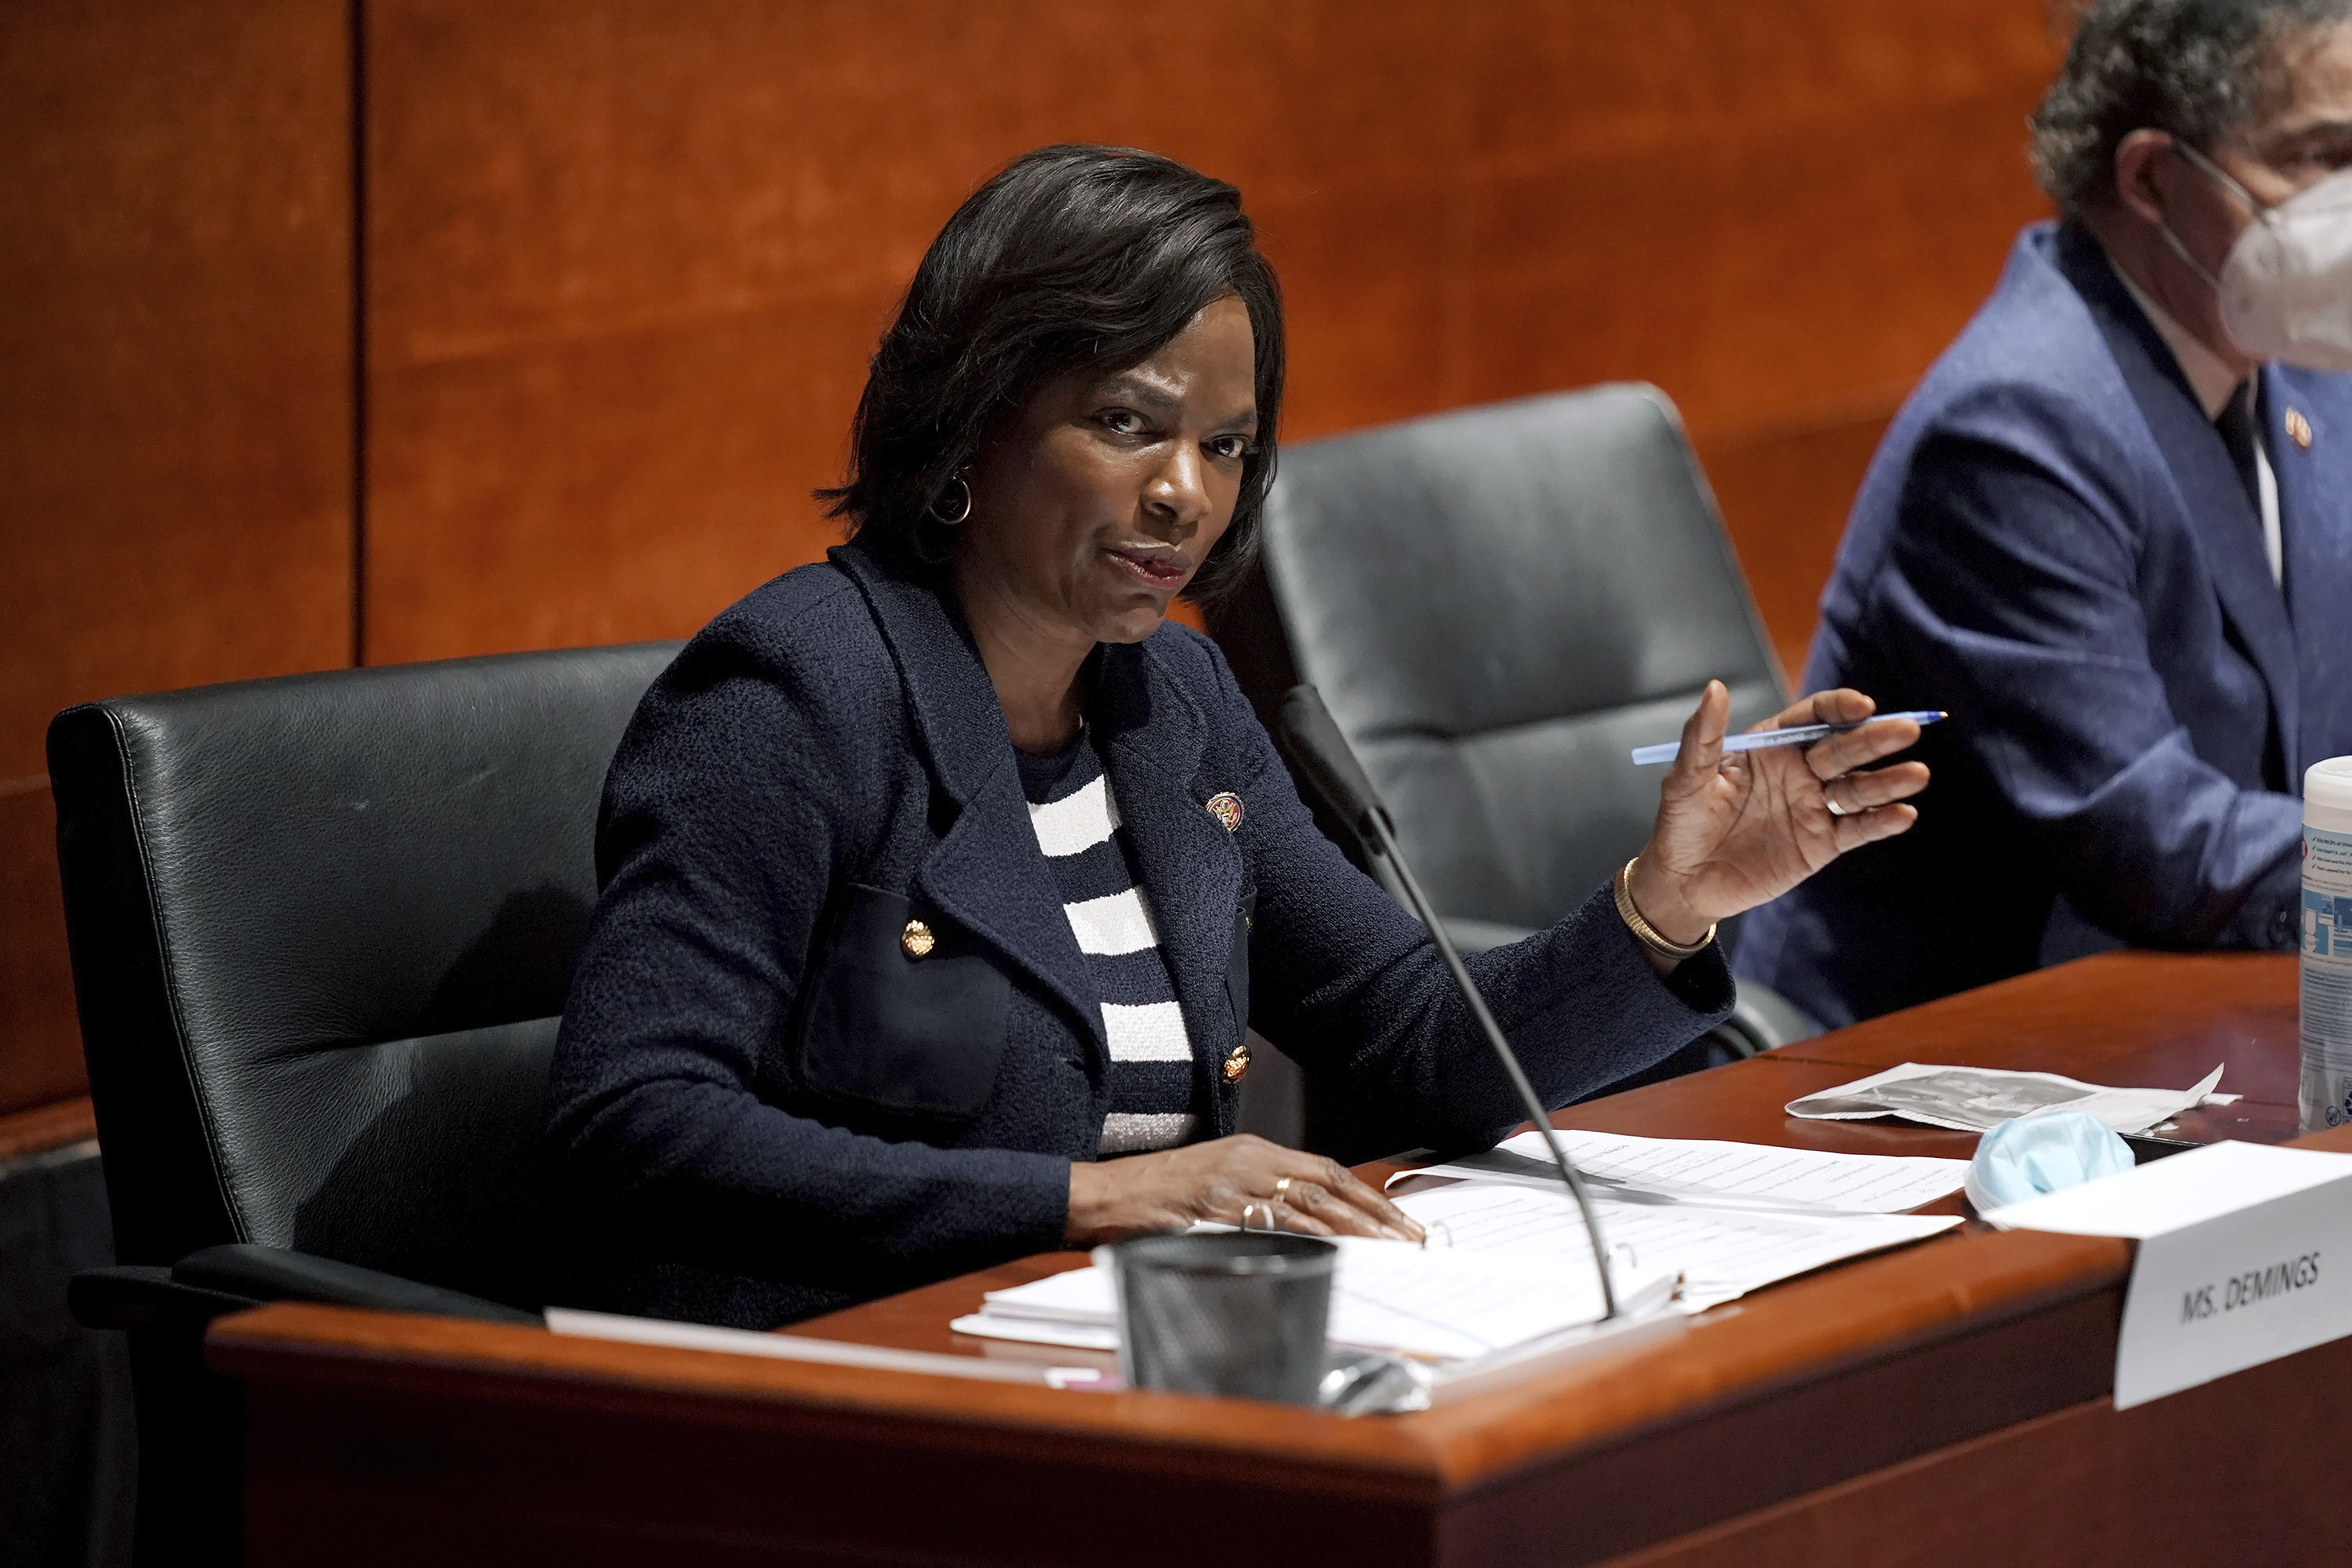 In this June 10, 2020, file photo Rep. Val Demings, D-Fla., asks questions during a House Judiciary Committee hearing on proposed changes to police practices and accountability on Capitol Hill in Washington. Demings is running for Republican Sen. Marco Rubio's Florida seat.